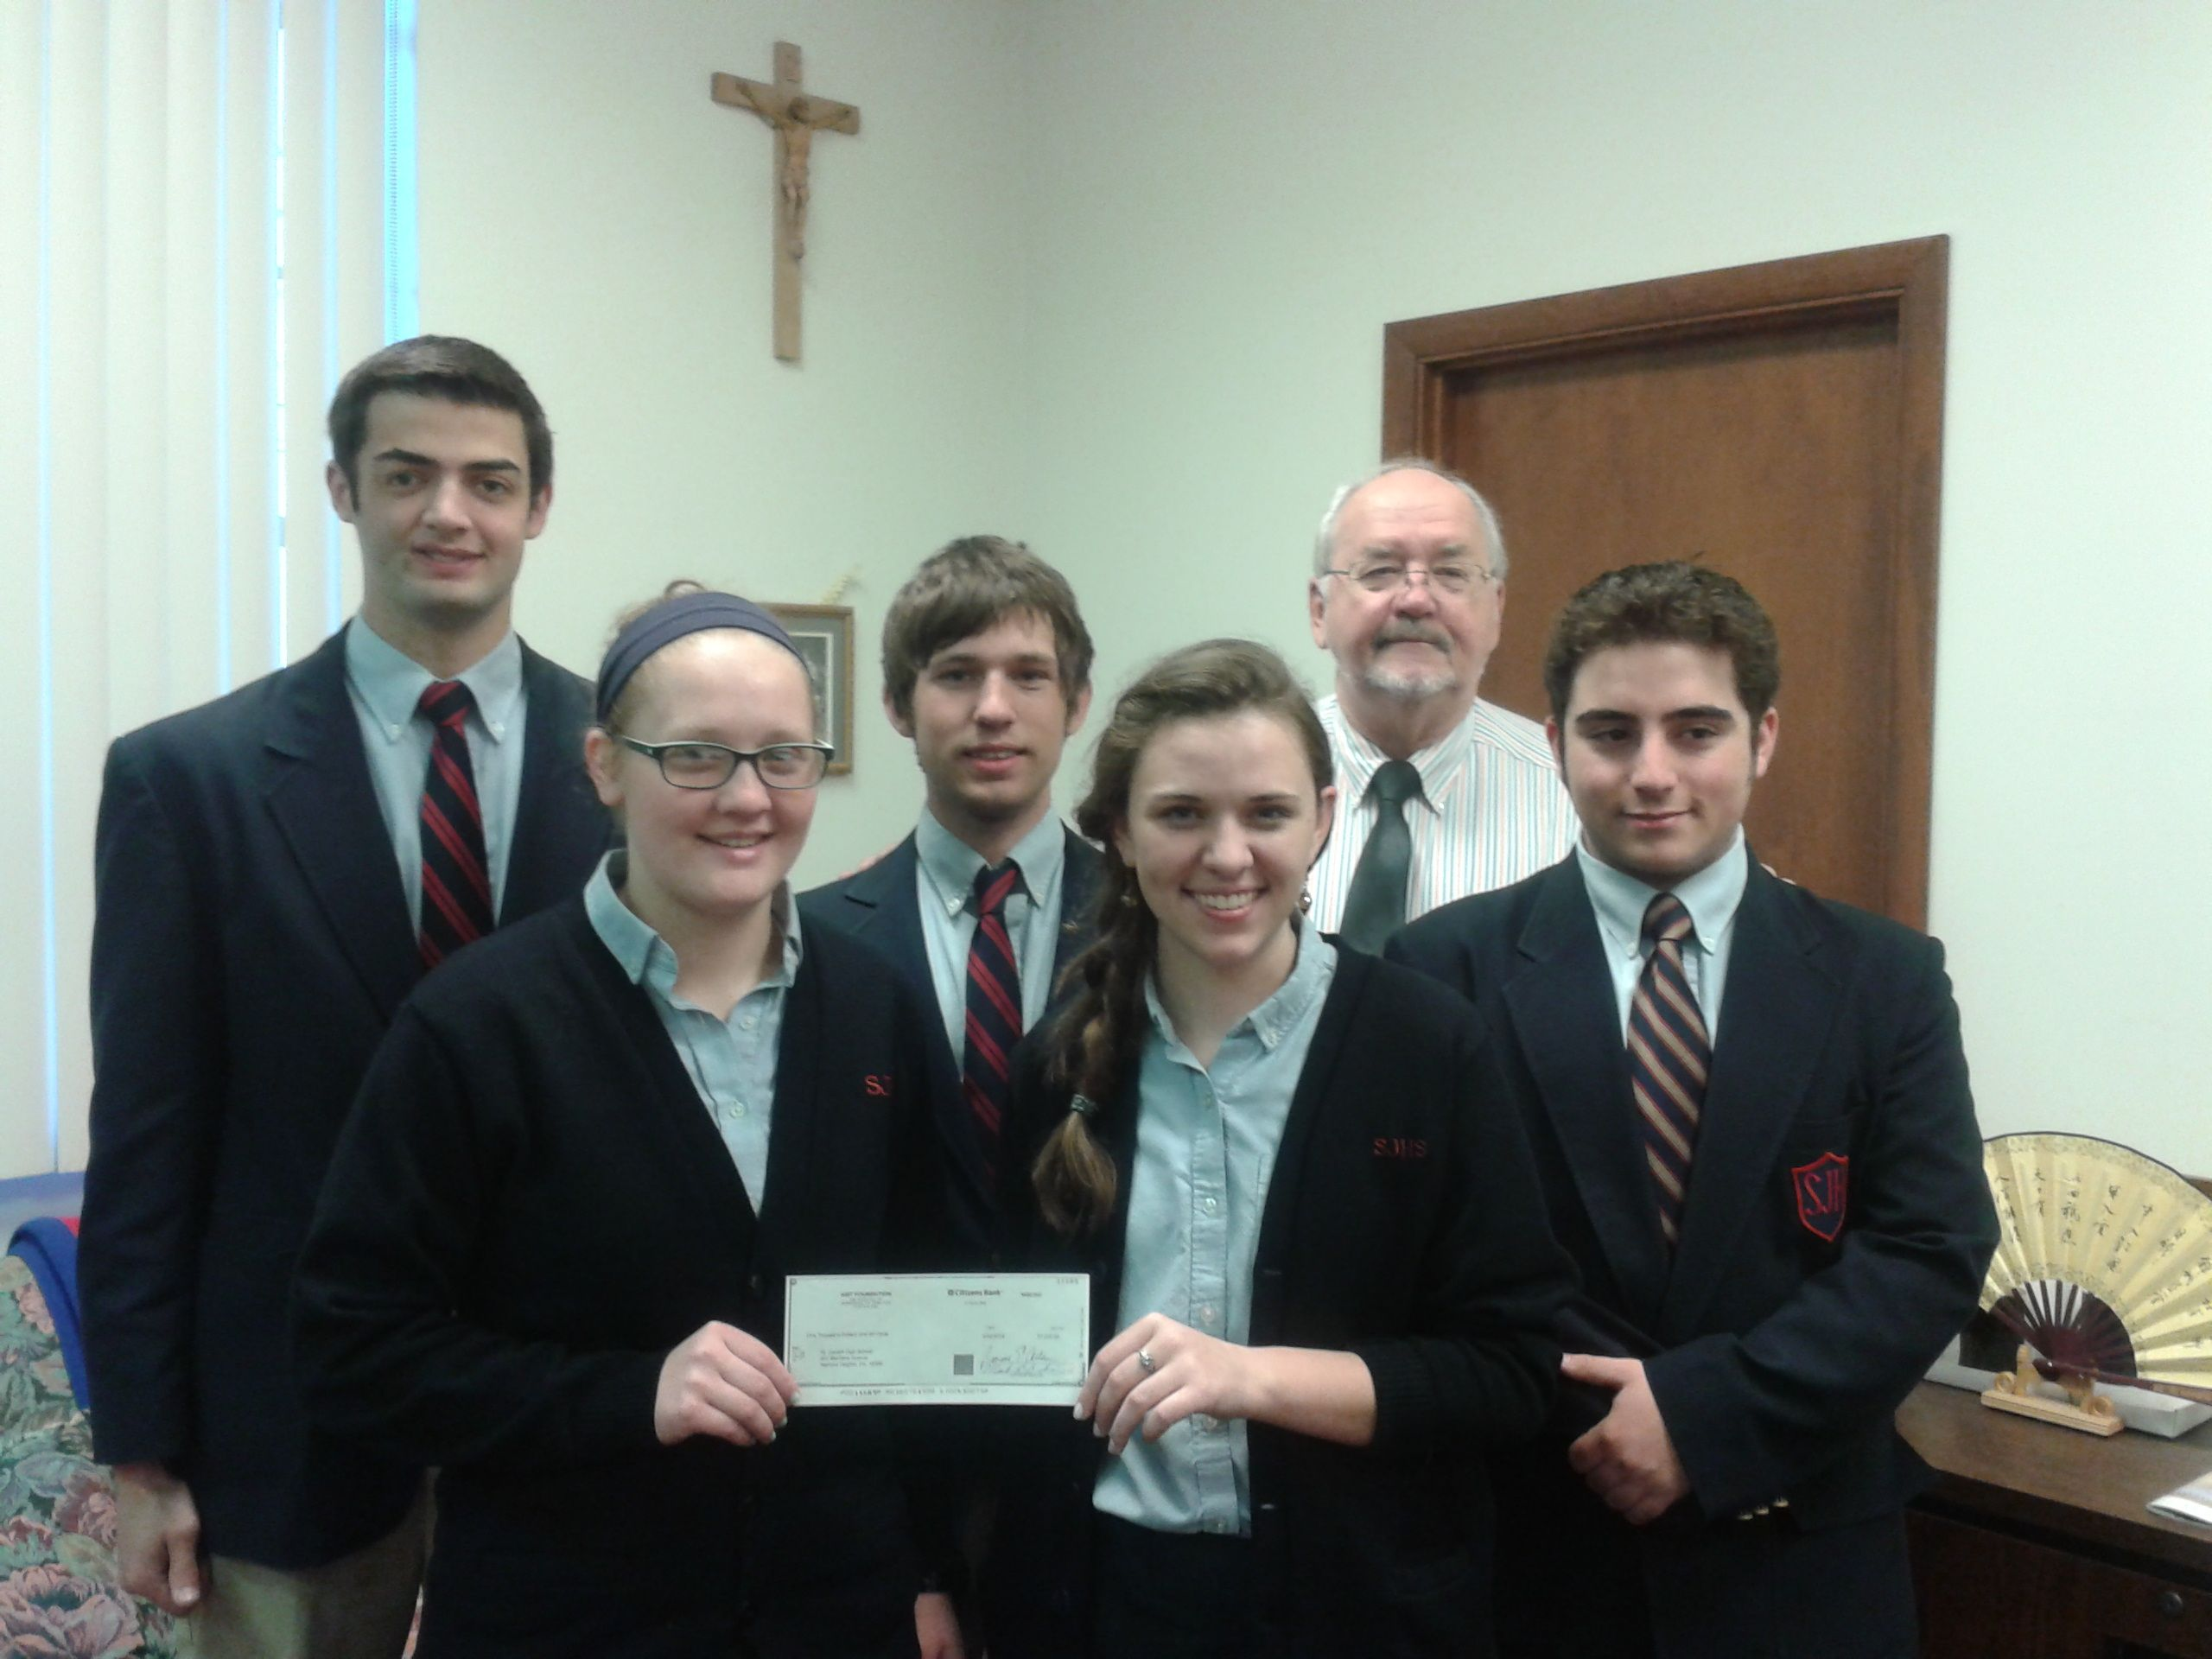 """This morning, the $1,000 prize check from AIST's """"The Real Steel"""" video contest was given to the principal from participating students and teacher Mr. Wes."""